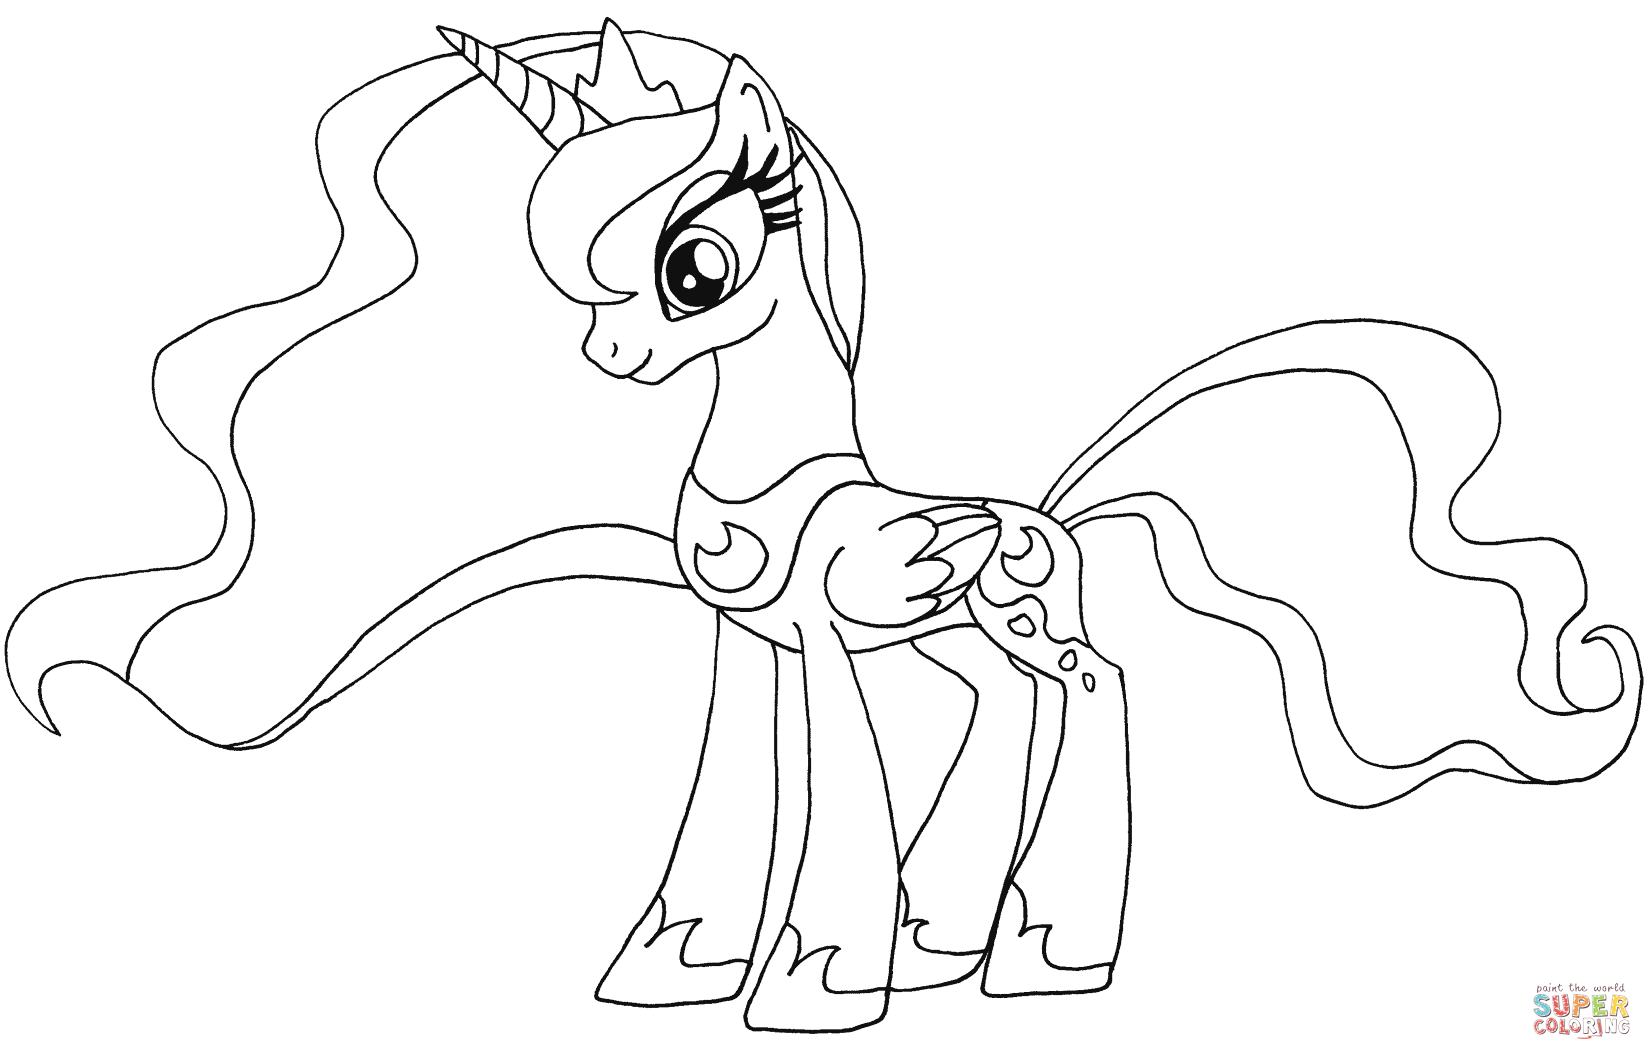 Coloring Pages Princess Pony : My little pony princess luna coloring pages az